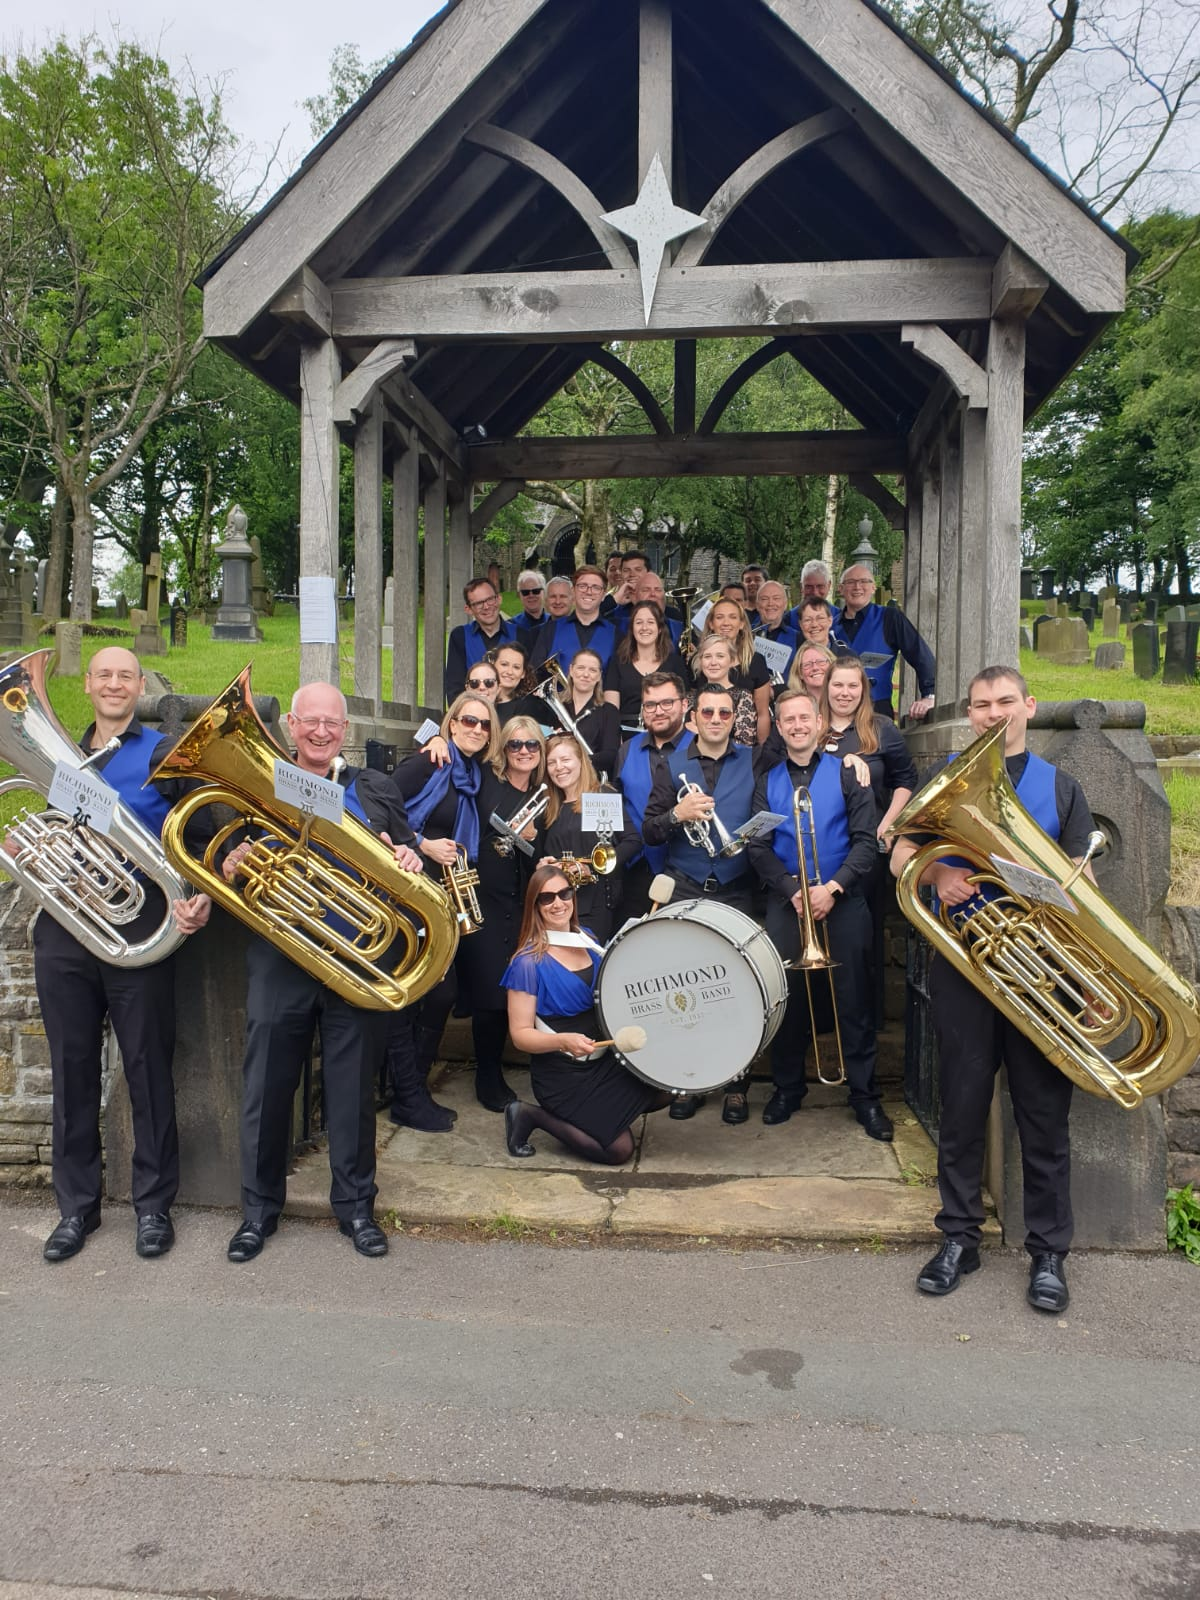 Richmond Brass Band under an arch in Denshaw